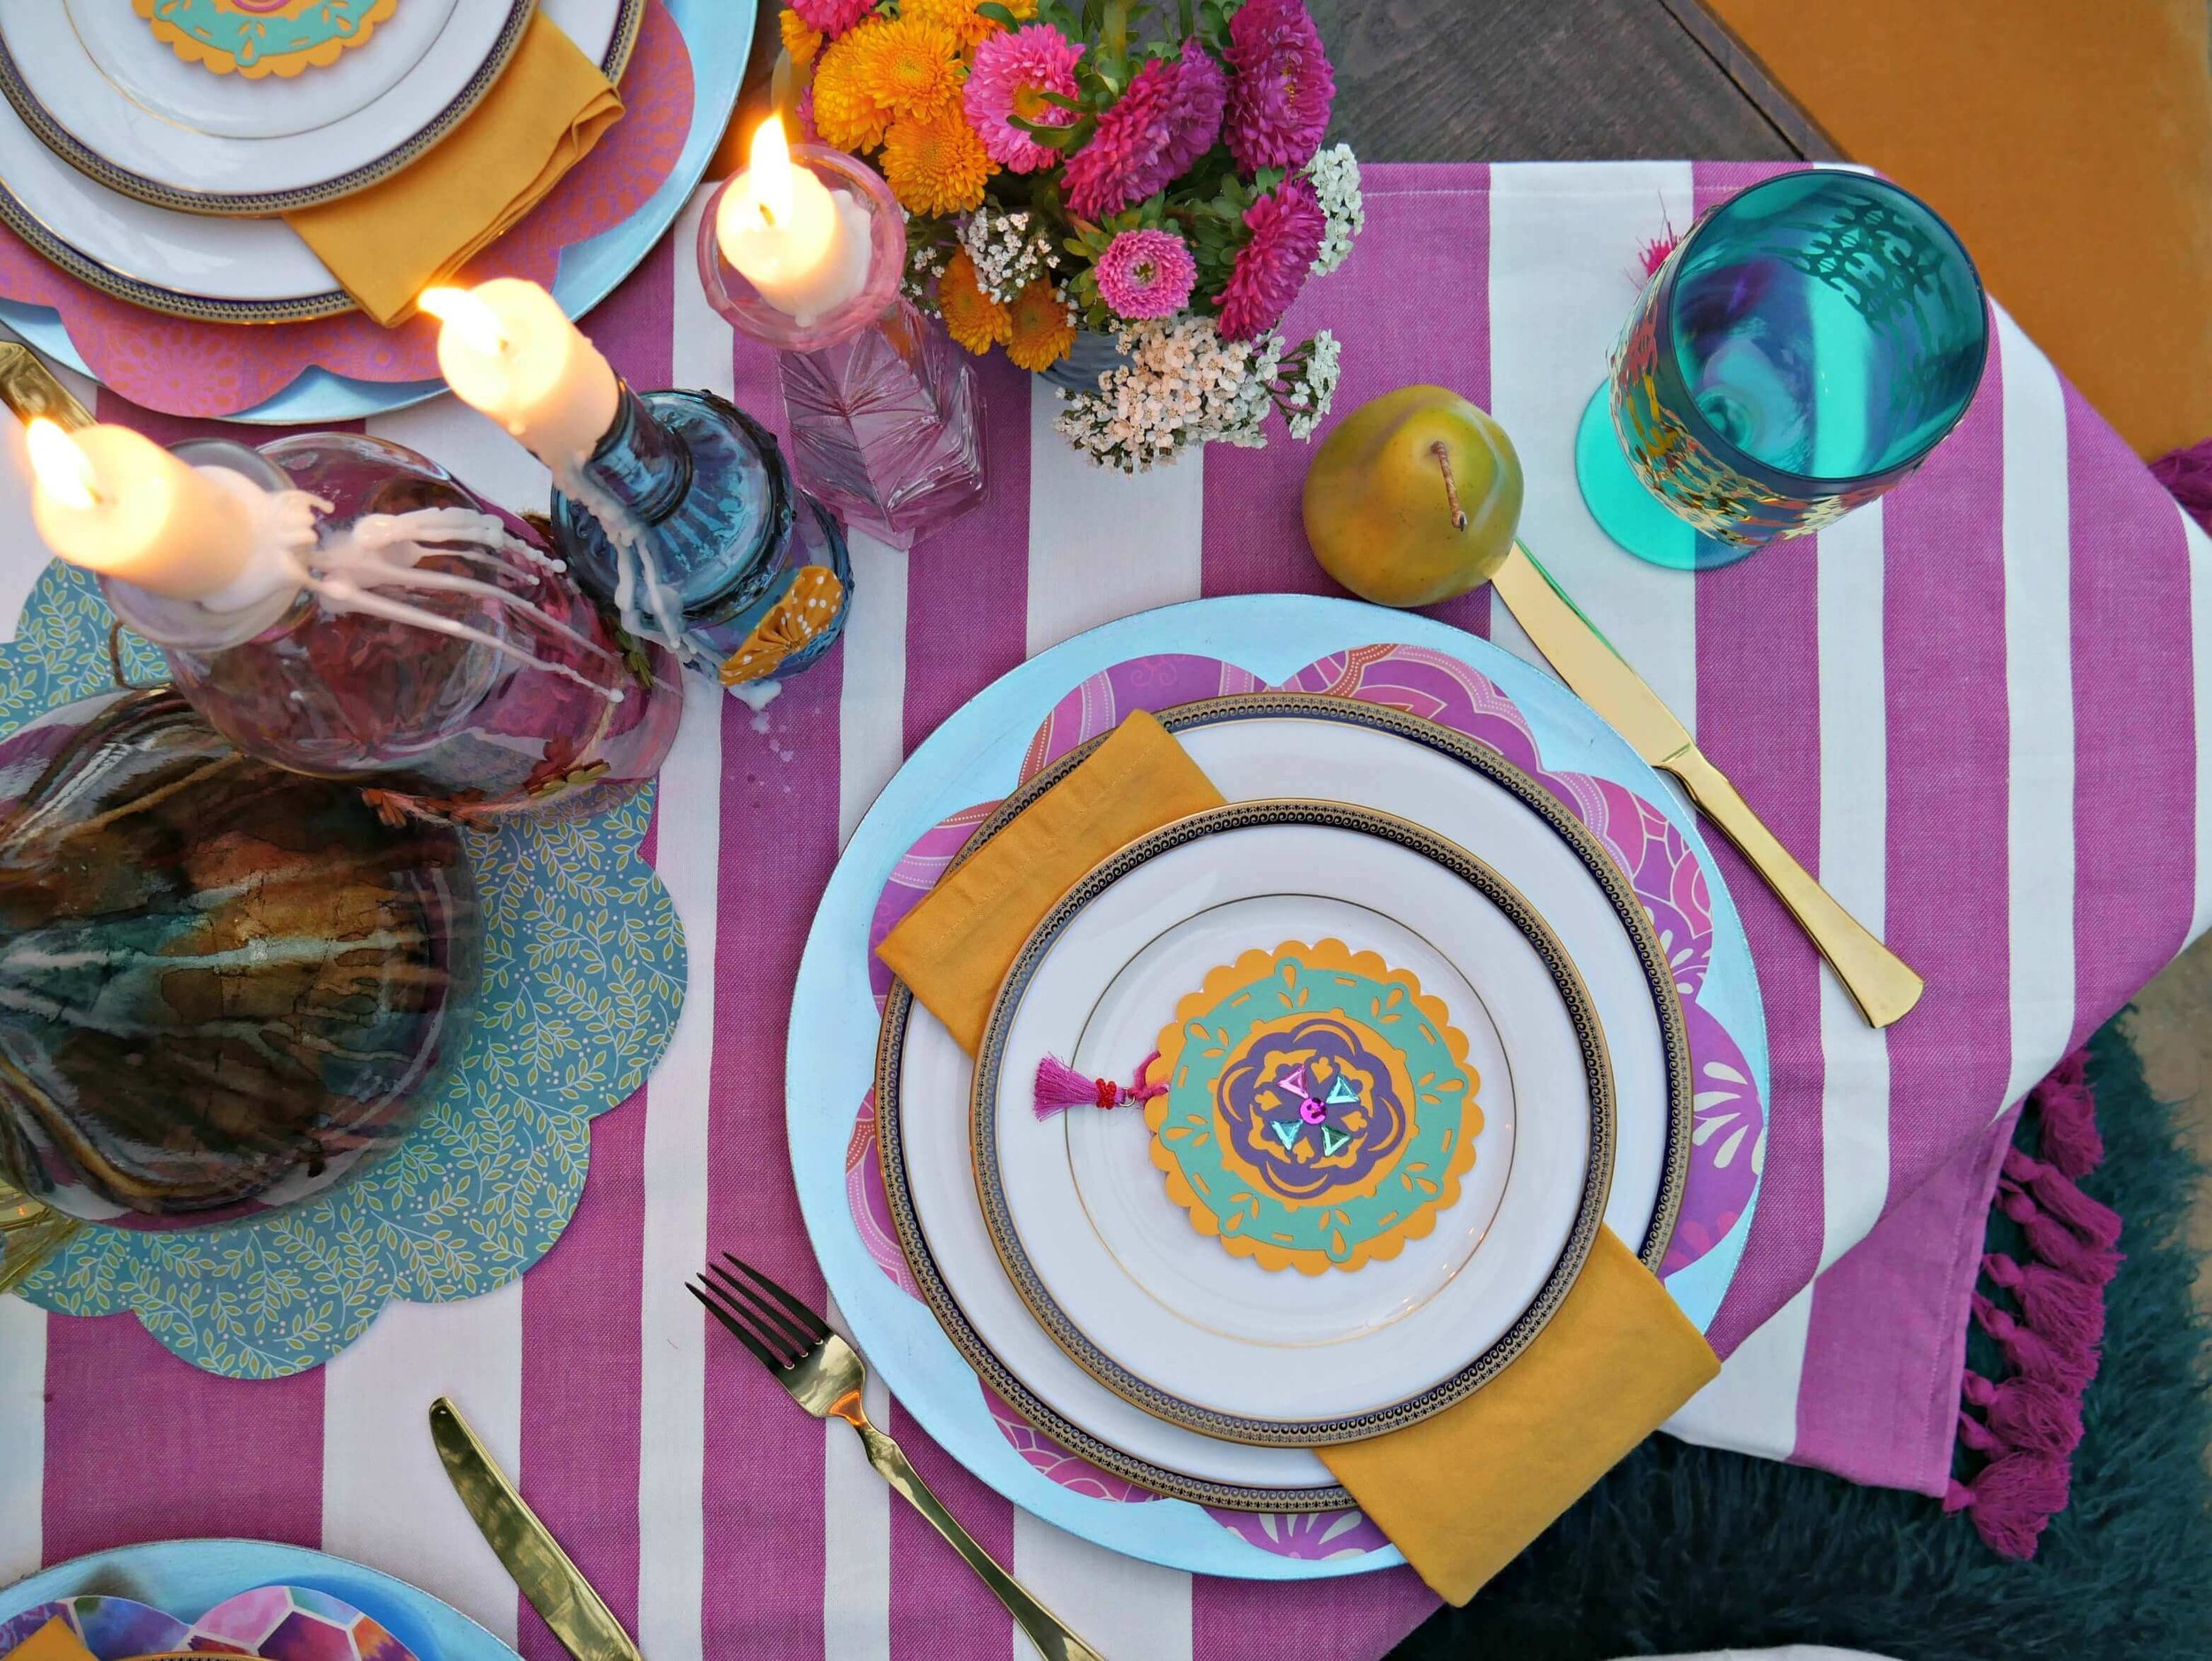 Boho and beautiful! This engagement party is inspired by jewel tones and pretty patterns. Styled by Mint Event Design www.minteventdesign.com #tablesetting #tablescapes #bohochic #engagementparty